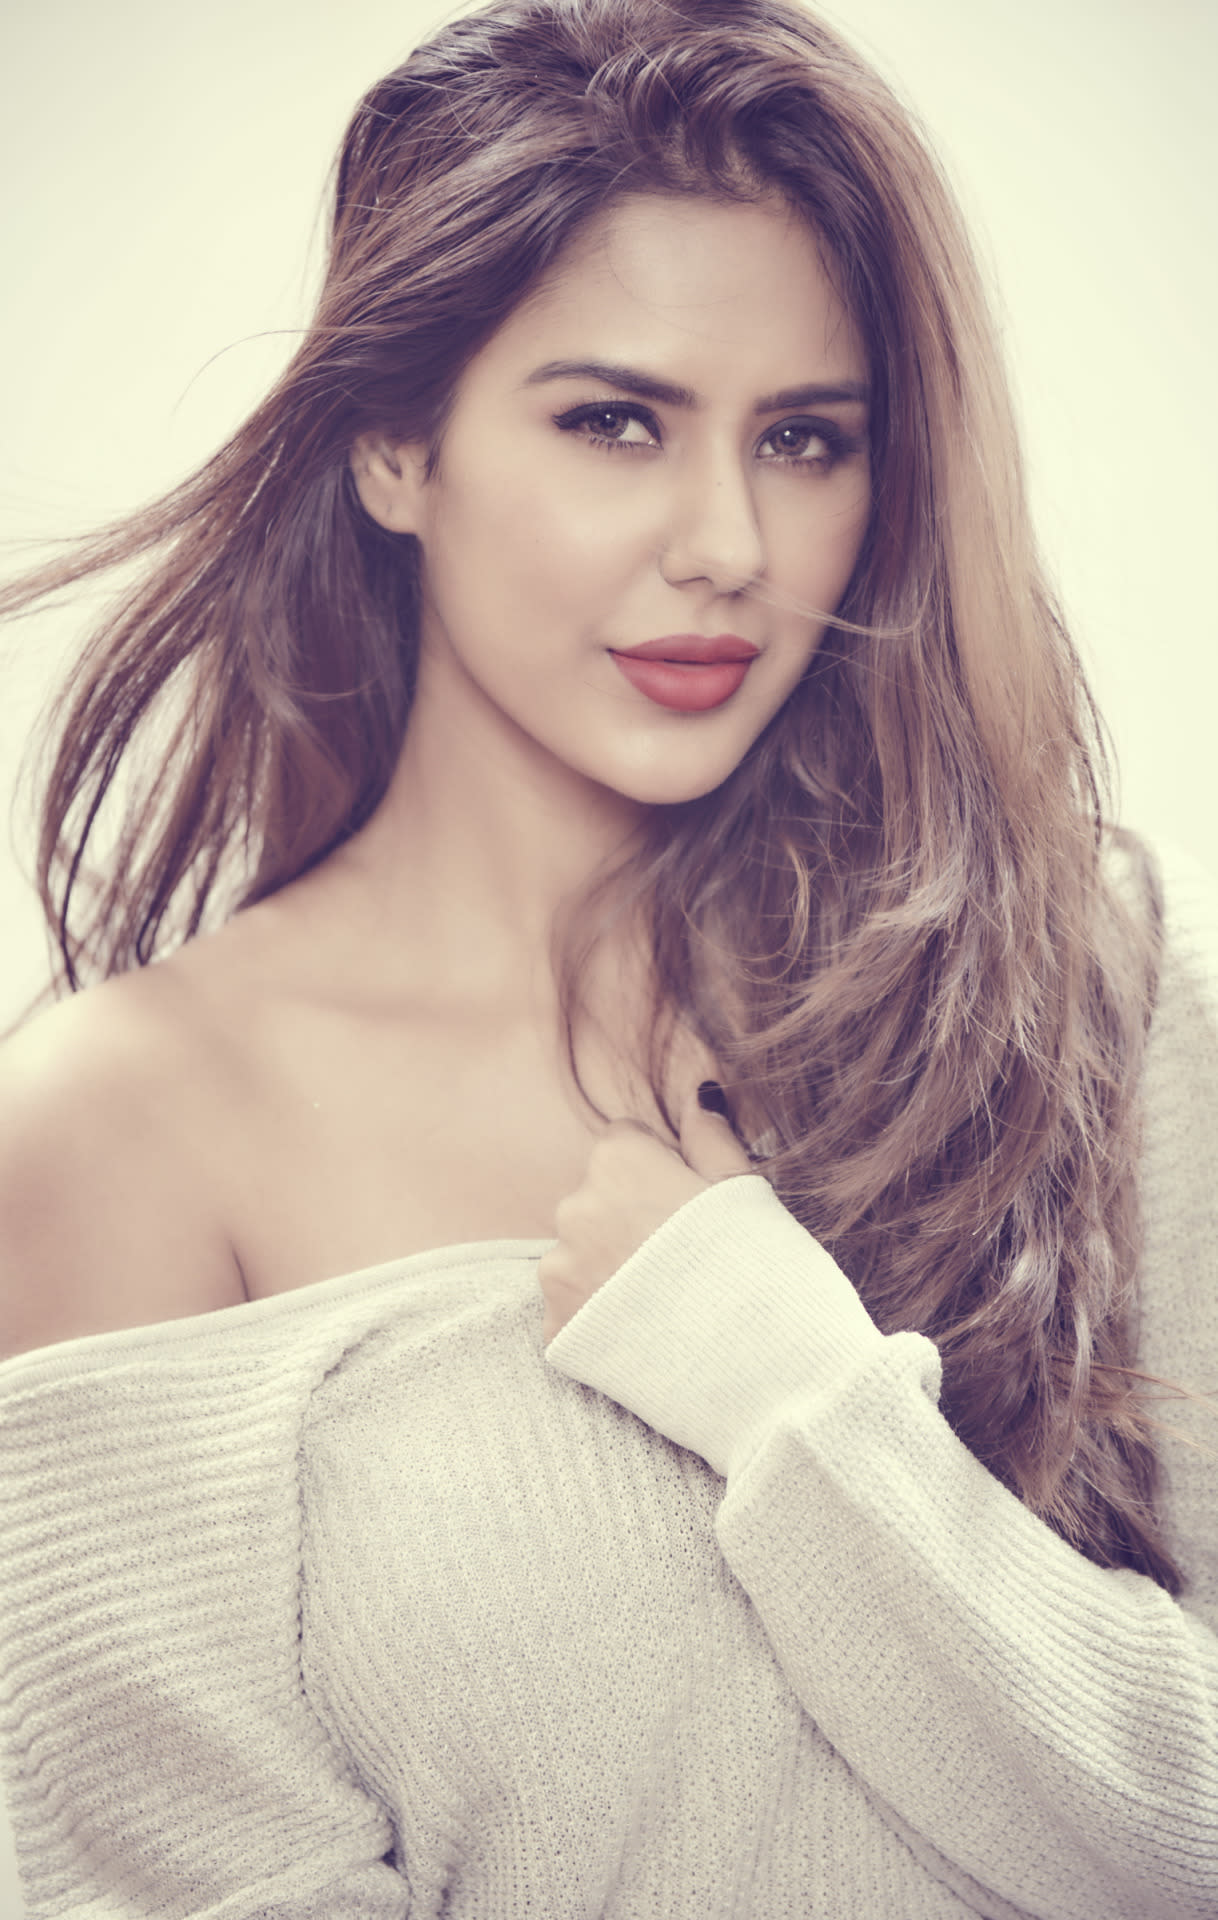 5 Punjabi actresses who we would love to see in Bollywood